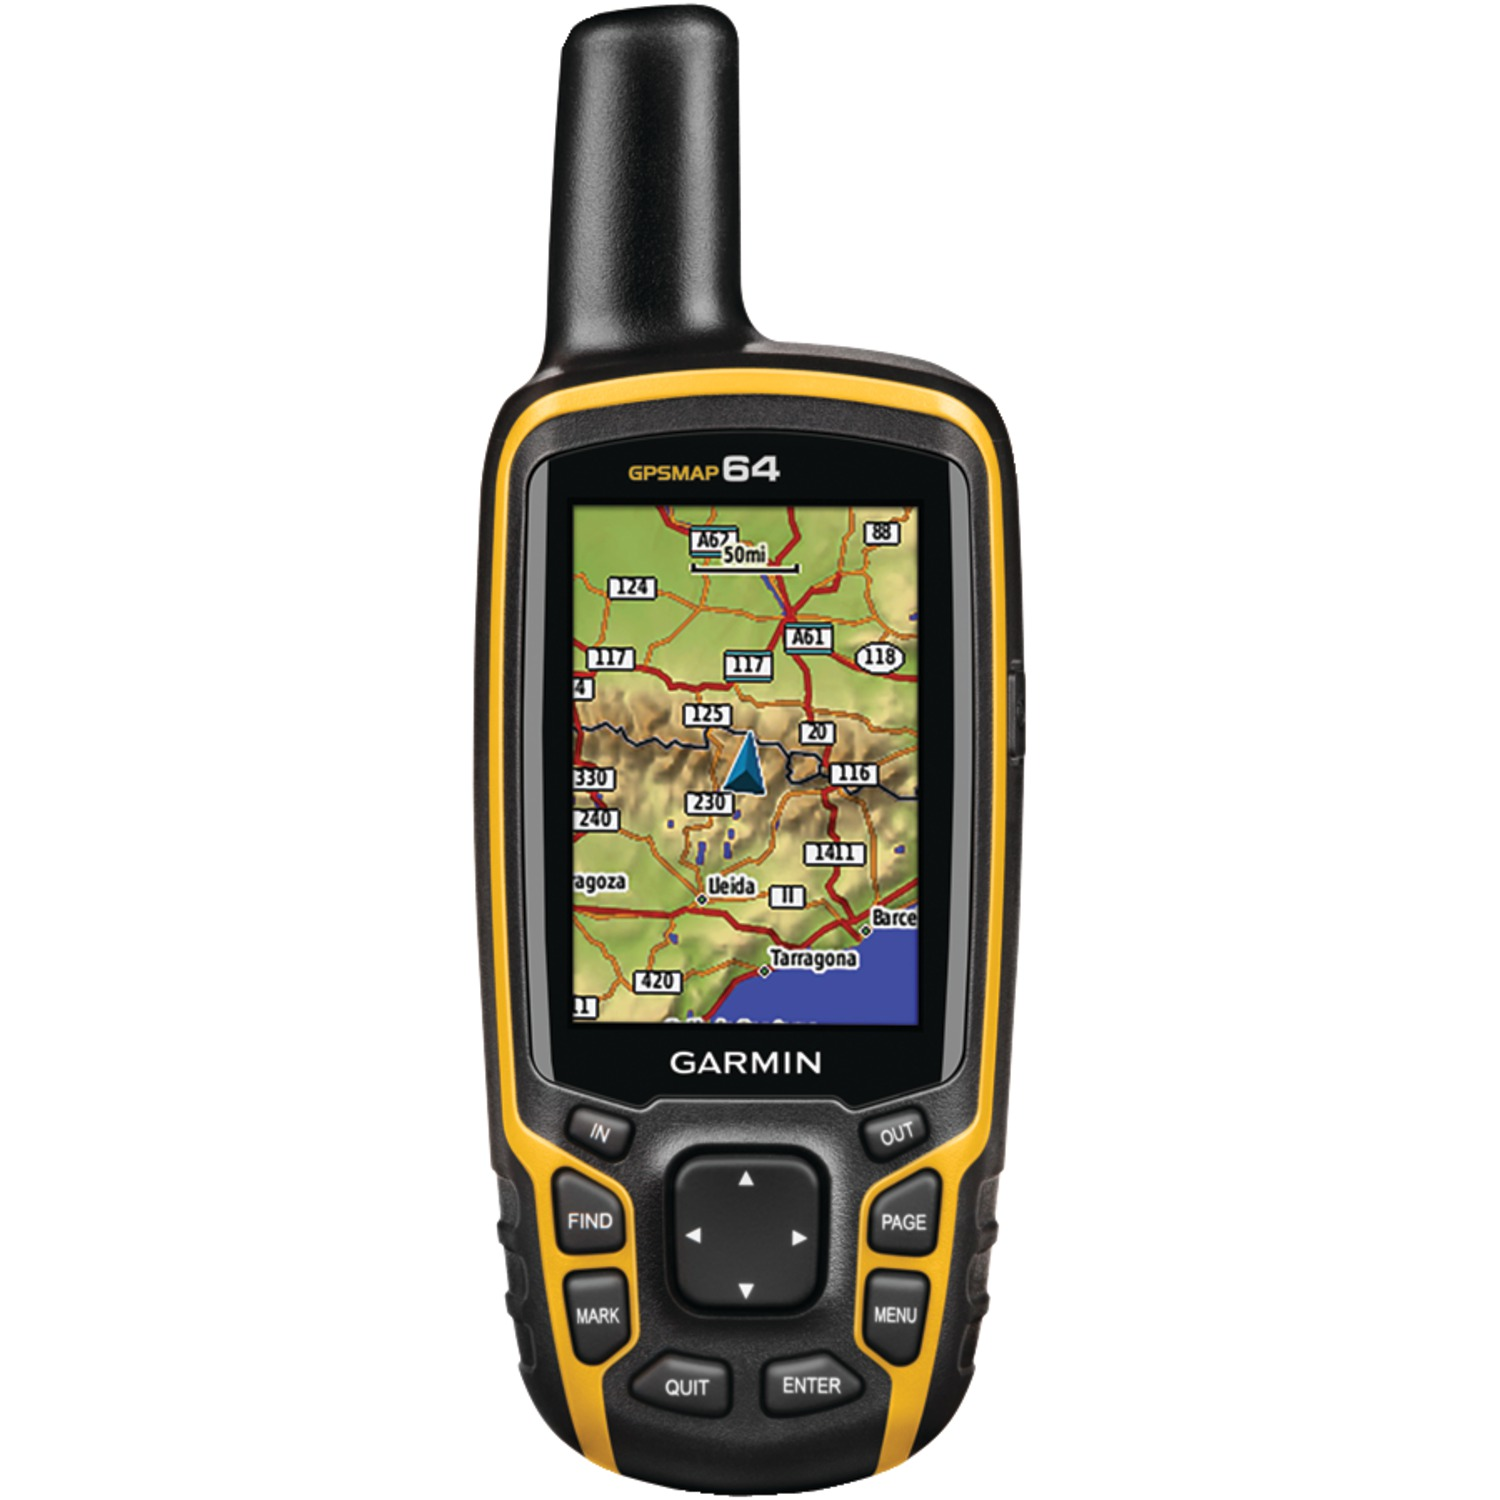 Garmin 010-01199-00 GPSMAP 64 Worldwide GPS Receiver